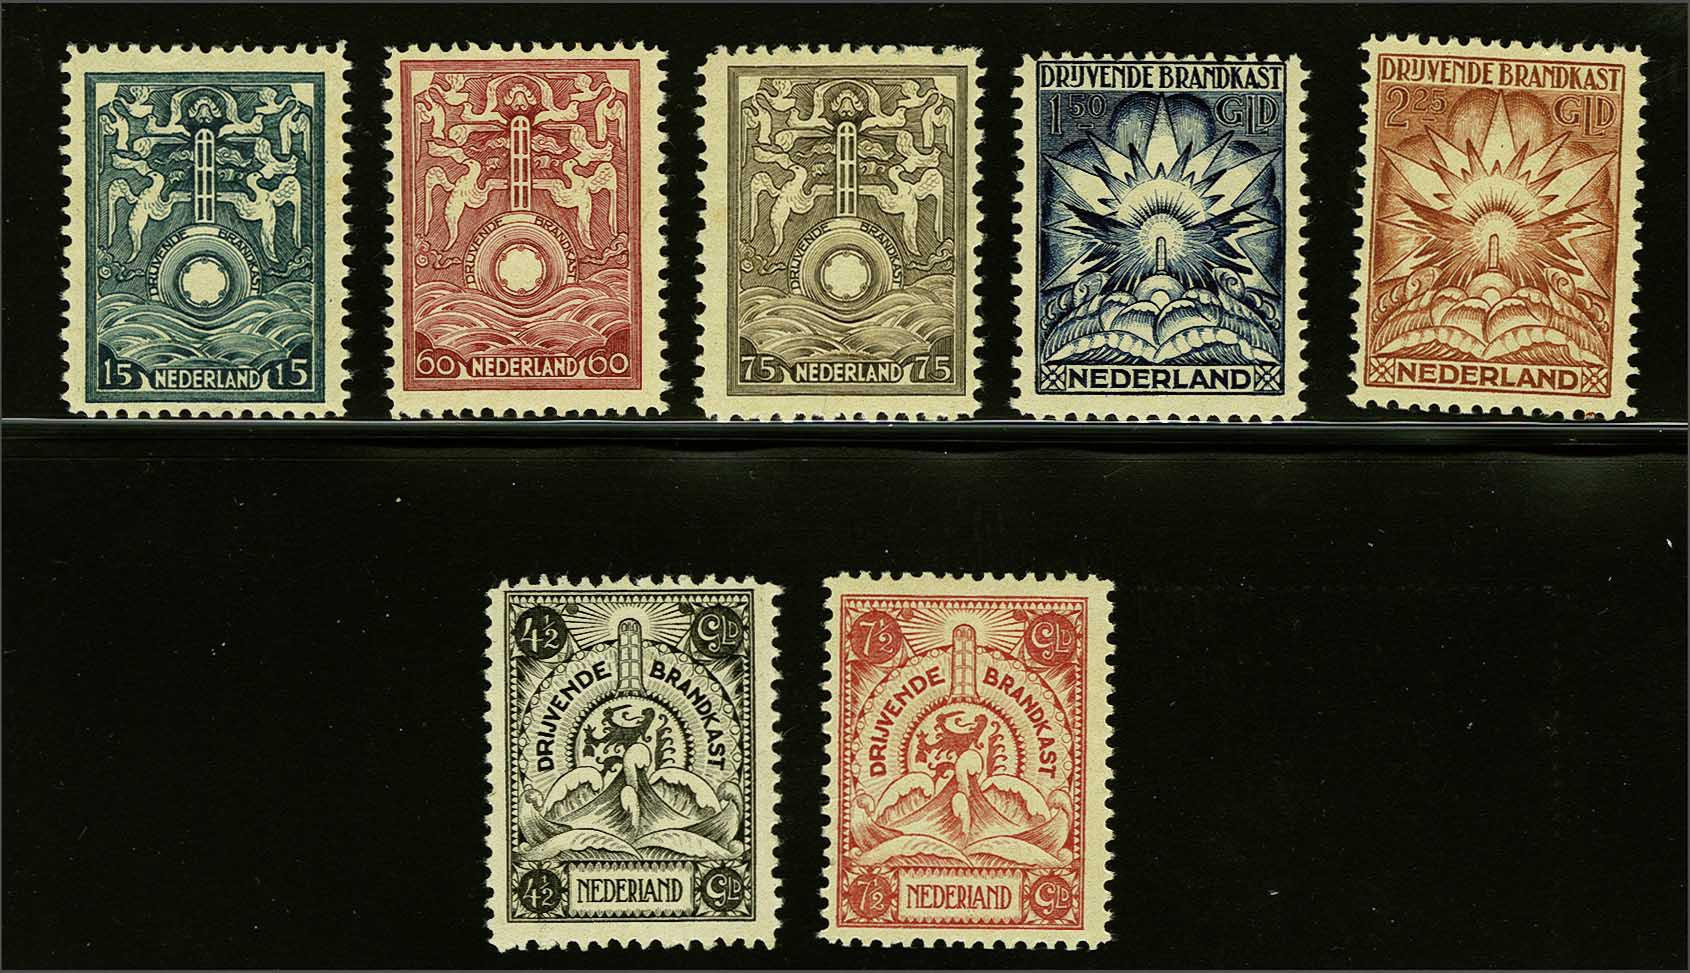 Lot 2026 - Netherlands and former colonies netherlands incendiarybox insurance -  Corinphila Veilingen Auction 245-246 Day 3 - Netherlands and former colonies - Single lots, Collections and lots, Boxes and literature